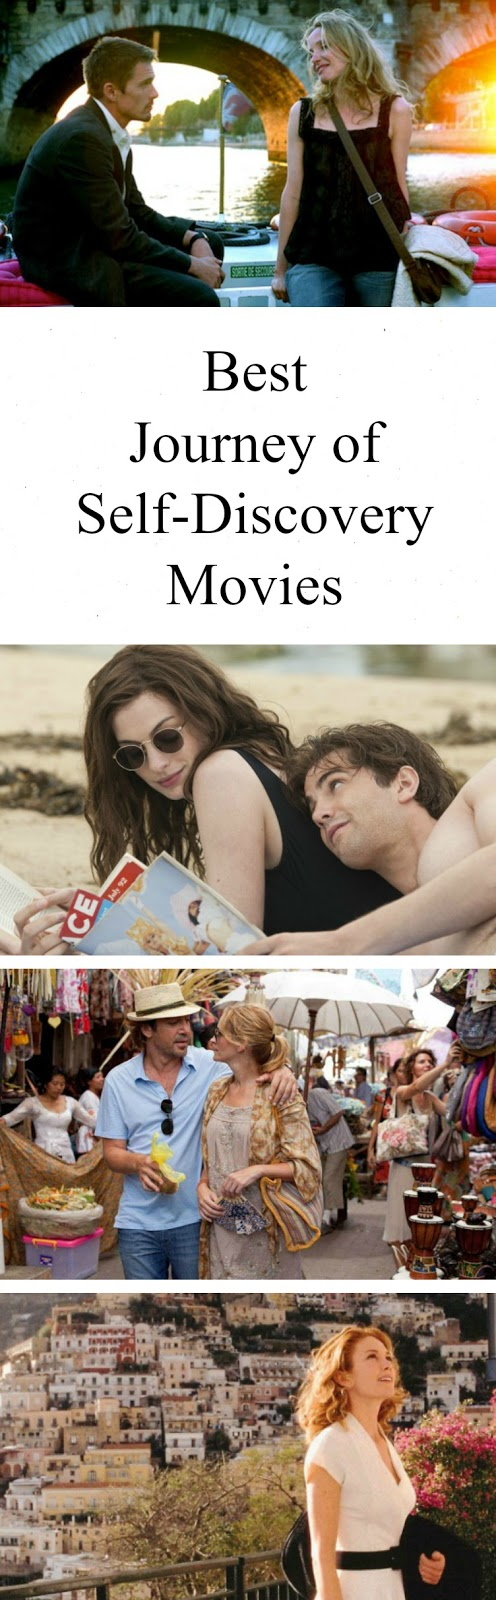 difference between movie and book bridget jones diary Was bridget jones's diary a fitting adaption of pride and prejudice  of bridget jones's diary (2001 movie)  resemblance between the novel and this movie.